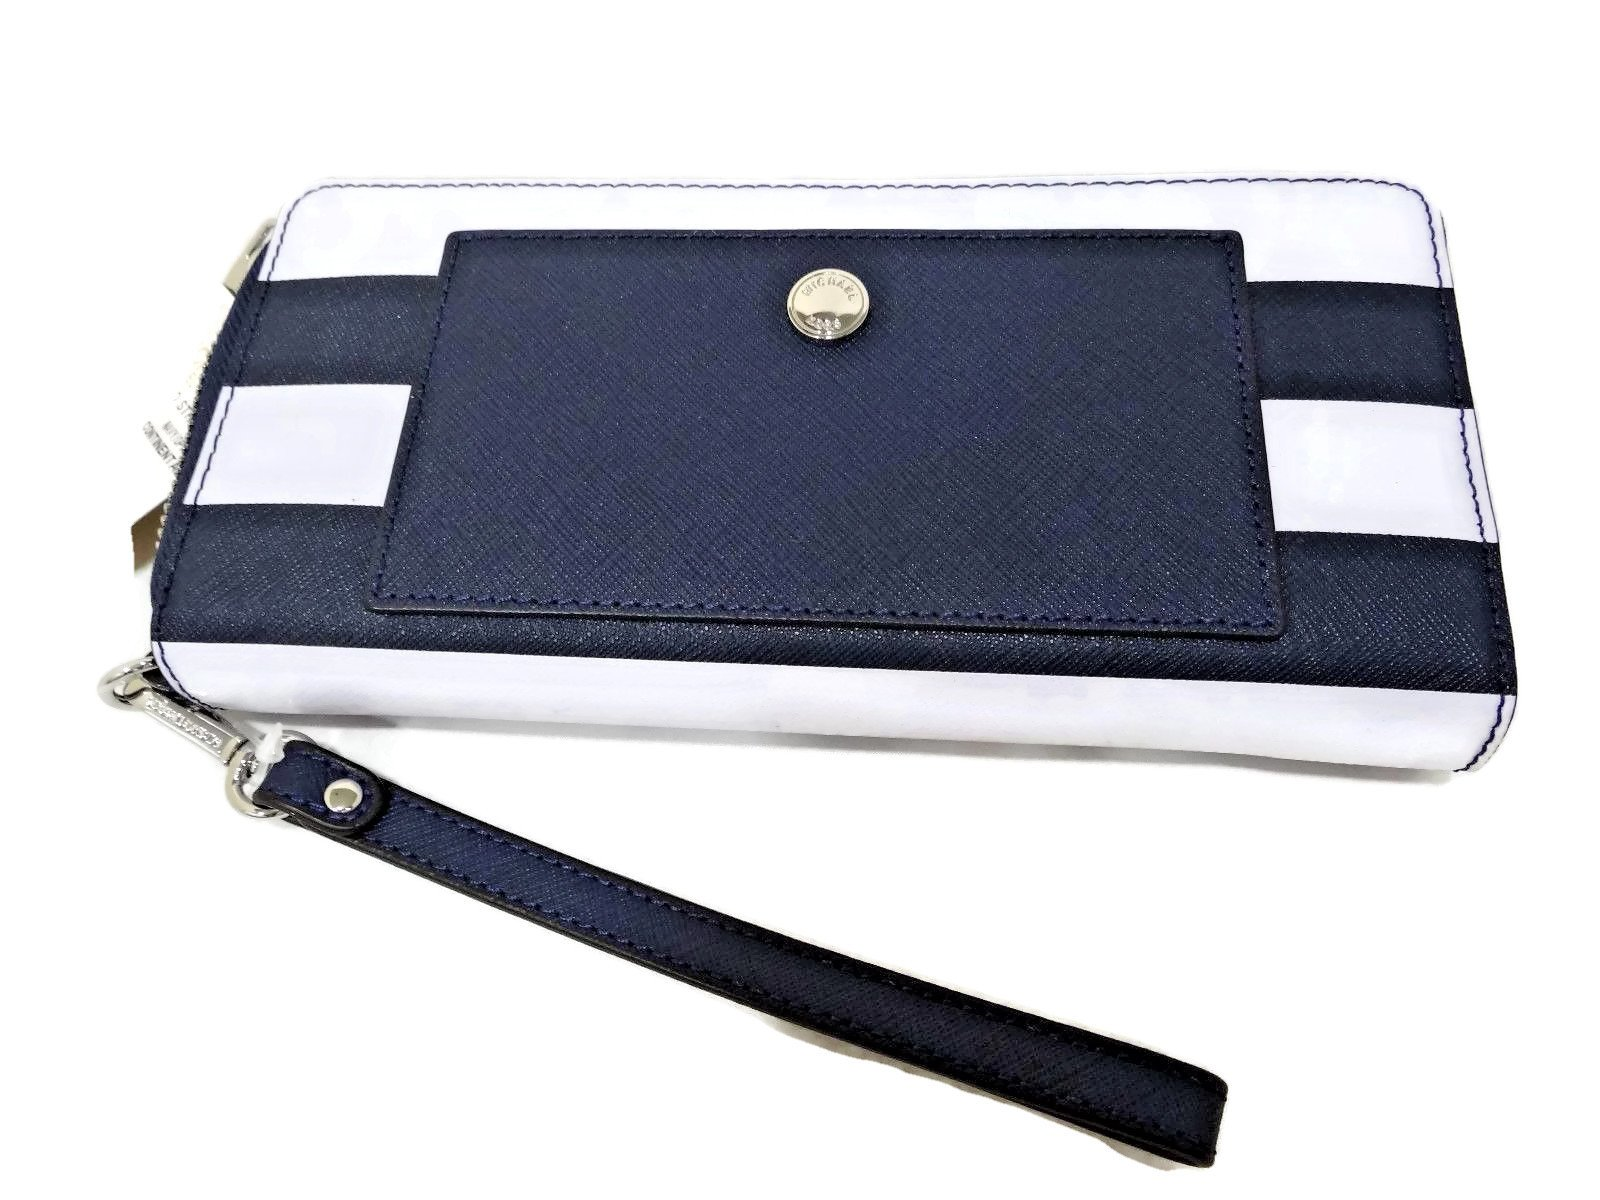 Michael Kors Travel Continental Wallet (Navy/White) by Michael Kors